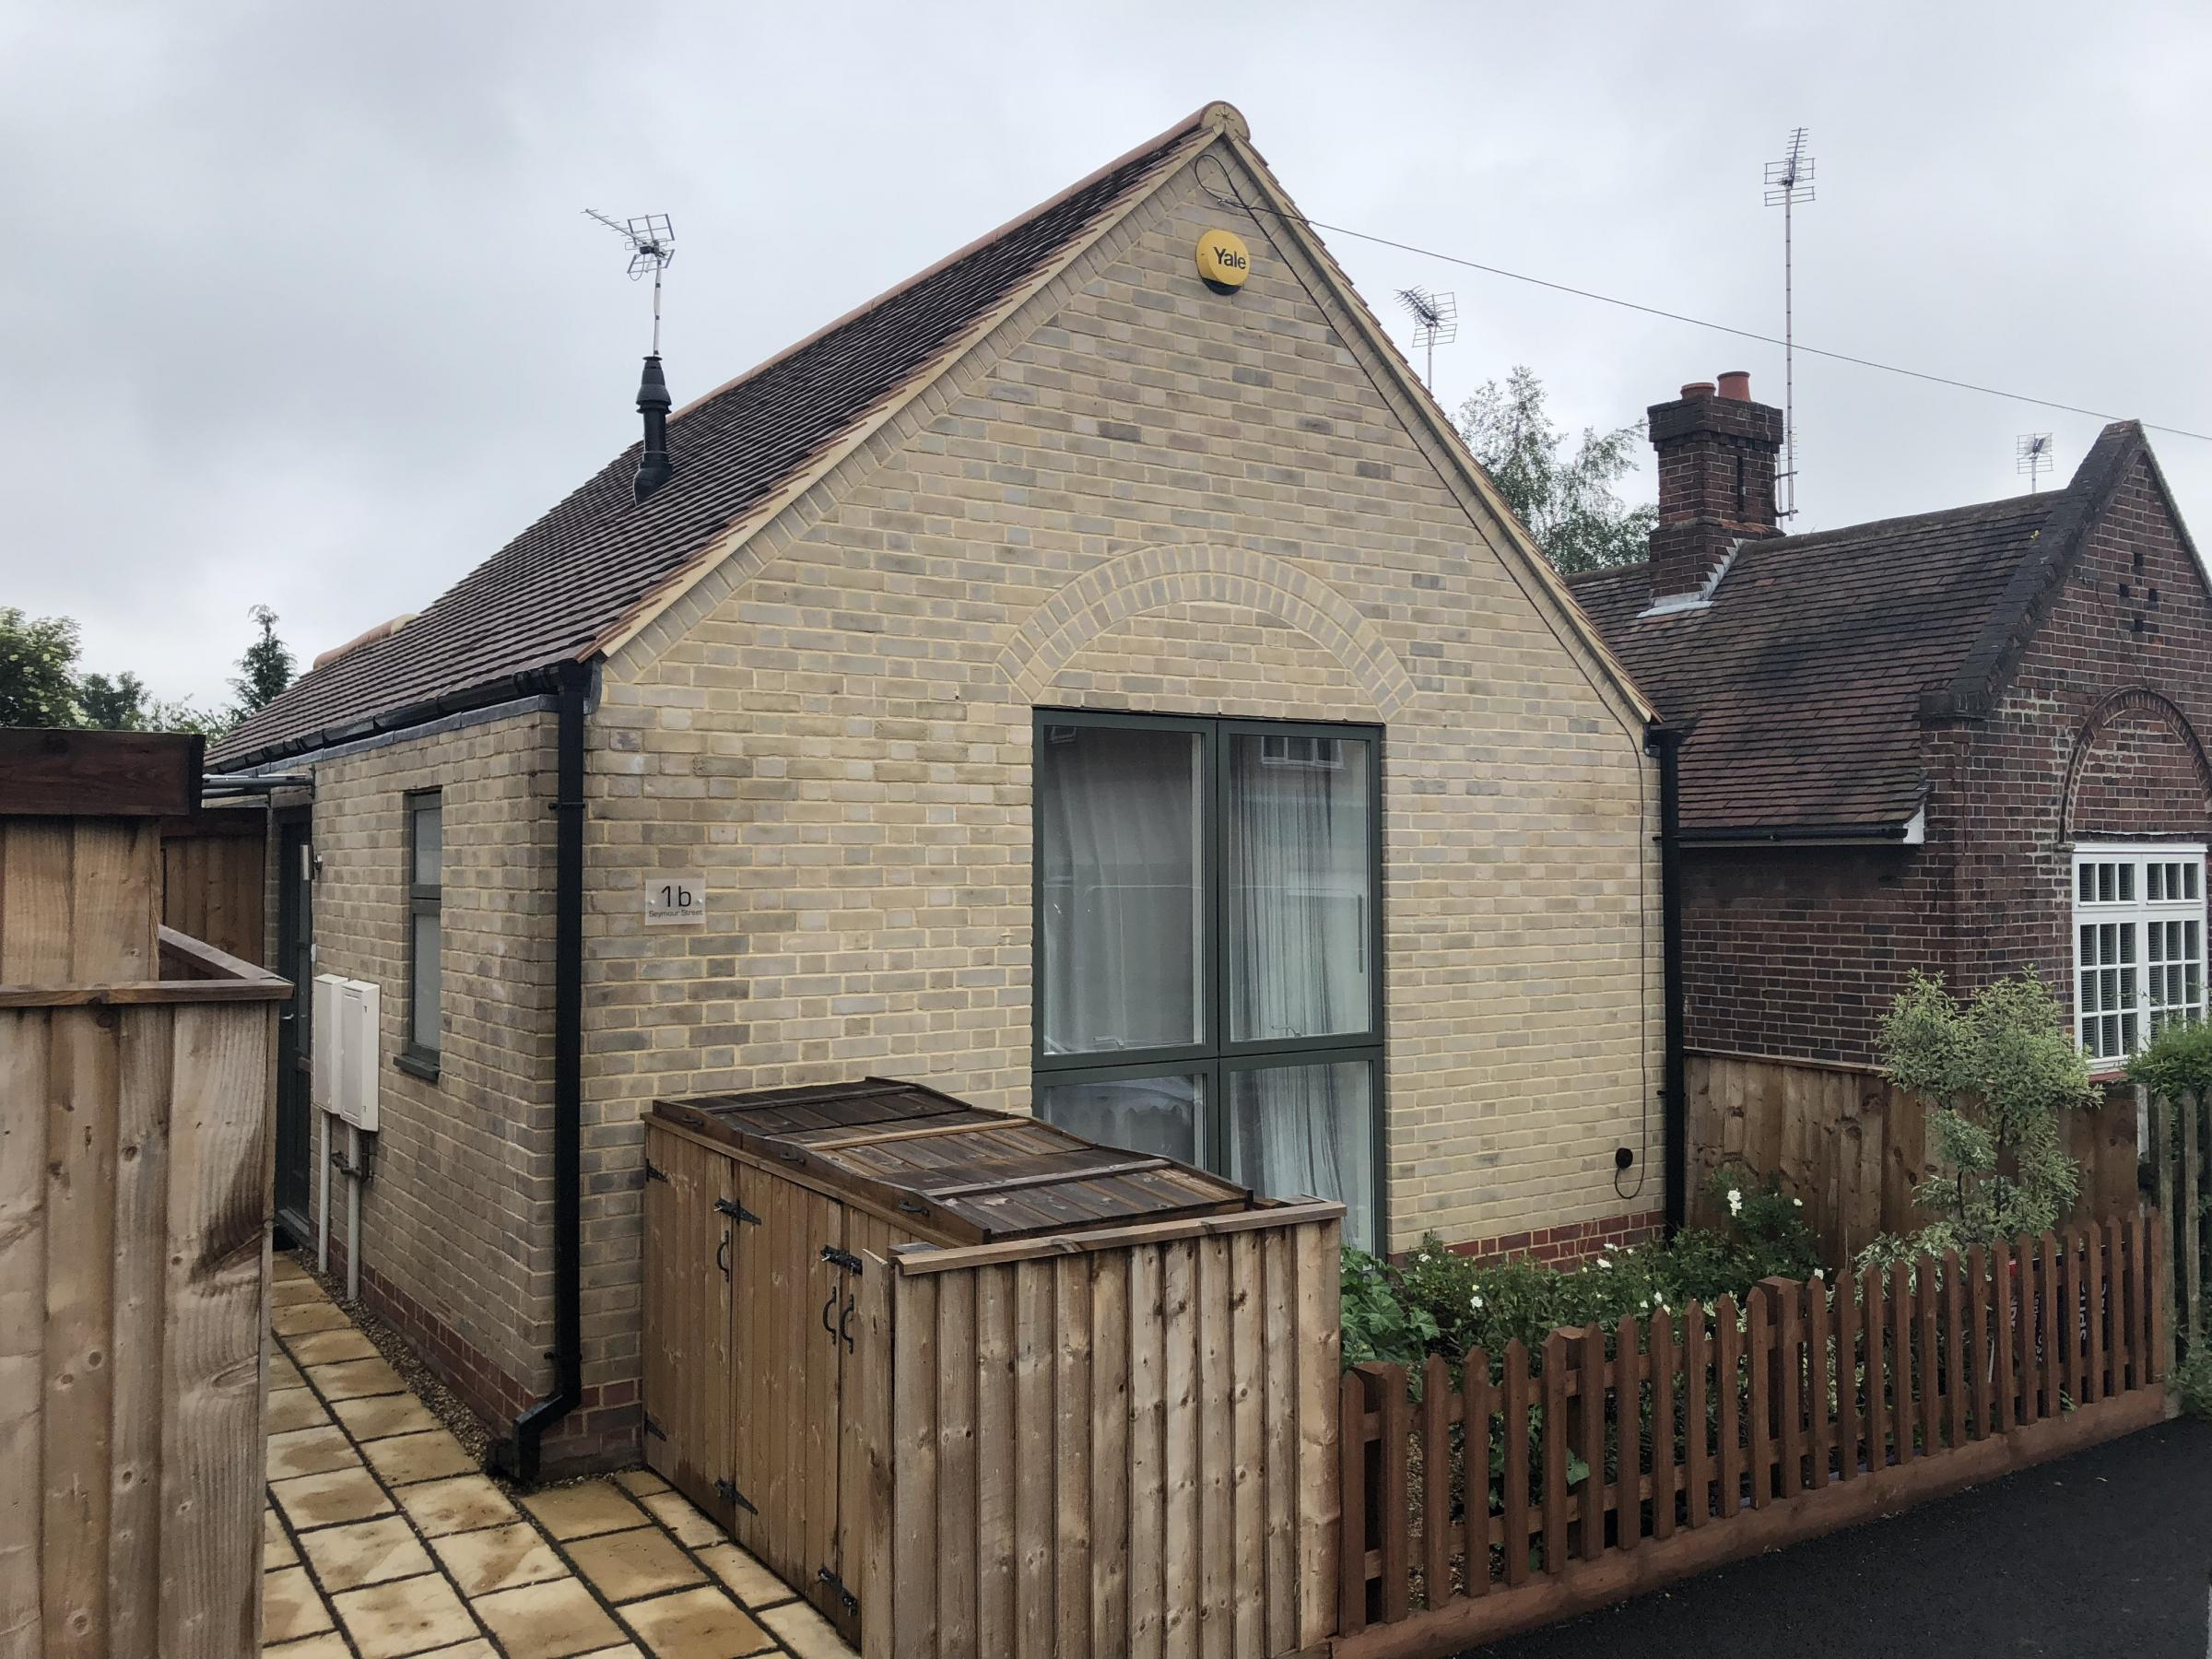 The tiny one-bedroom property in Seymour St, Cambridge which sold for £280,000. See Masons copy MNHOUSE: A 'rabbit hutch' house with just two rooms has sold for a whopping £280,000 - despite measuring just a titchy 11' by 8'7''.